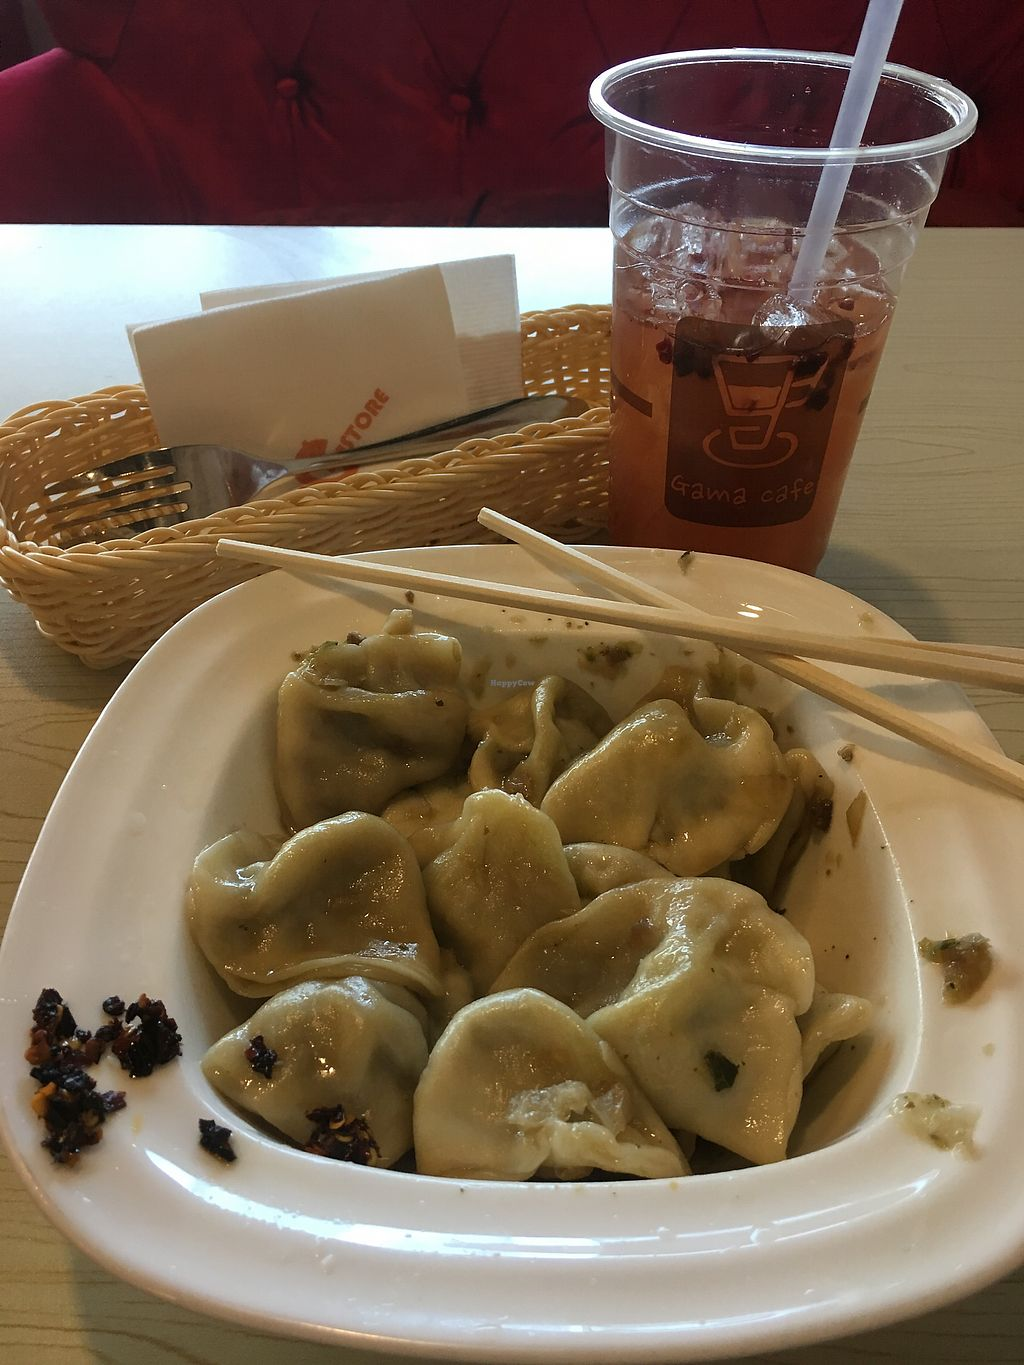 """Photo of Gama Cafe  by <a href=""""/members/profile/loopyandlumpy"""">loopyandlumpy</a> <br/>Vegan Cabbage and Mushroom handmade Dumplings <br/> January 18, 2018  - <a href='/contact/abuse/image/59270/348083'>Report</a>"""